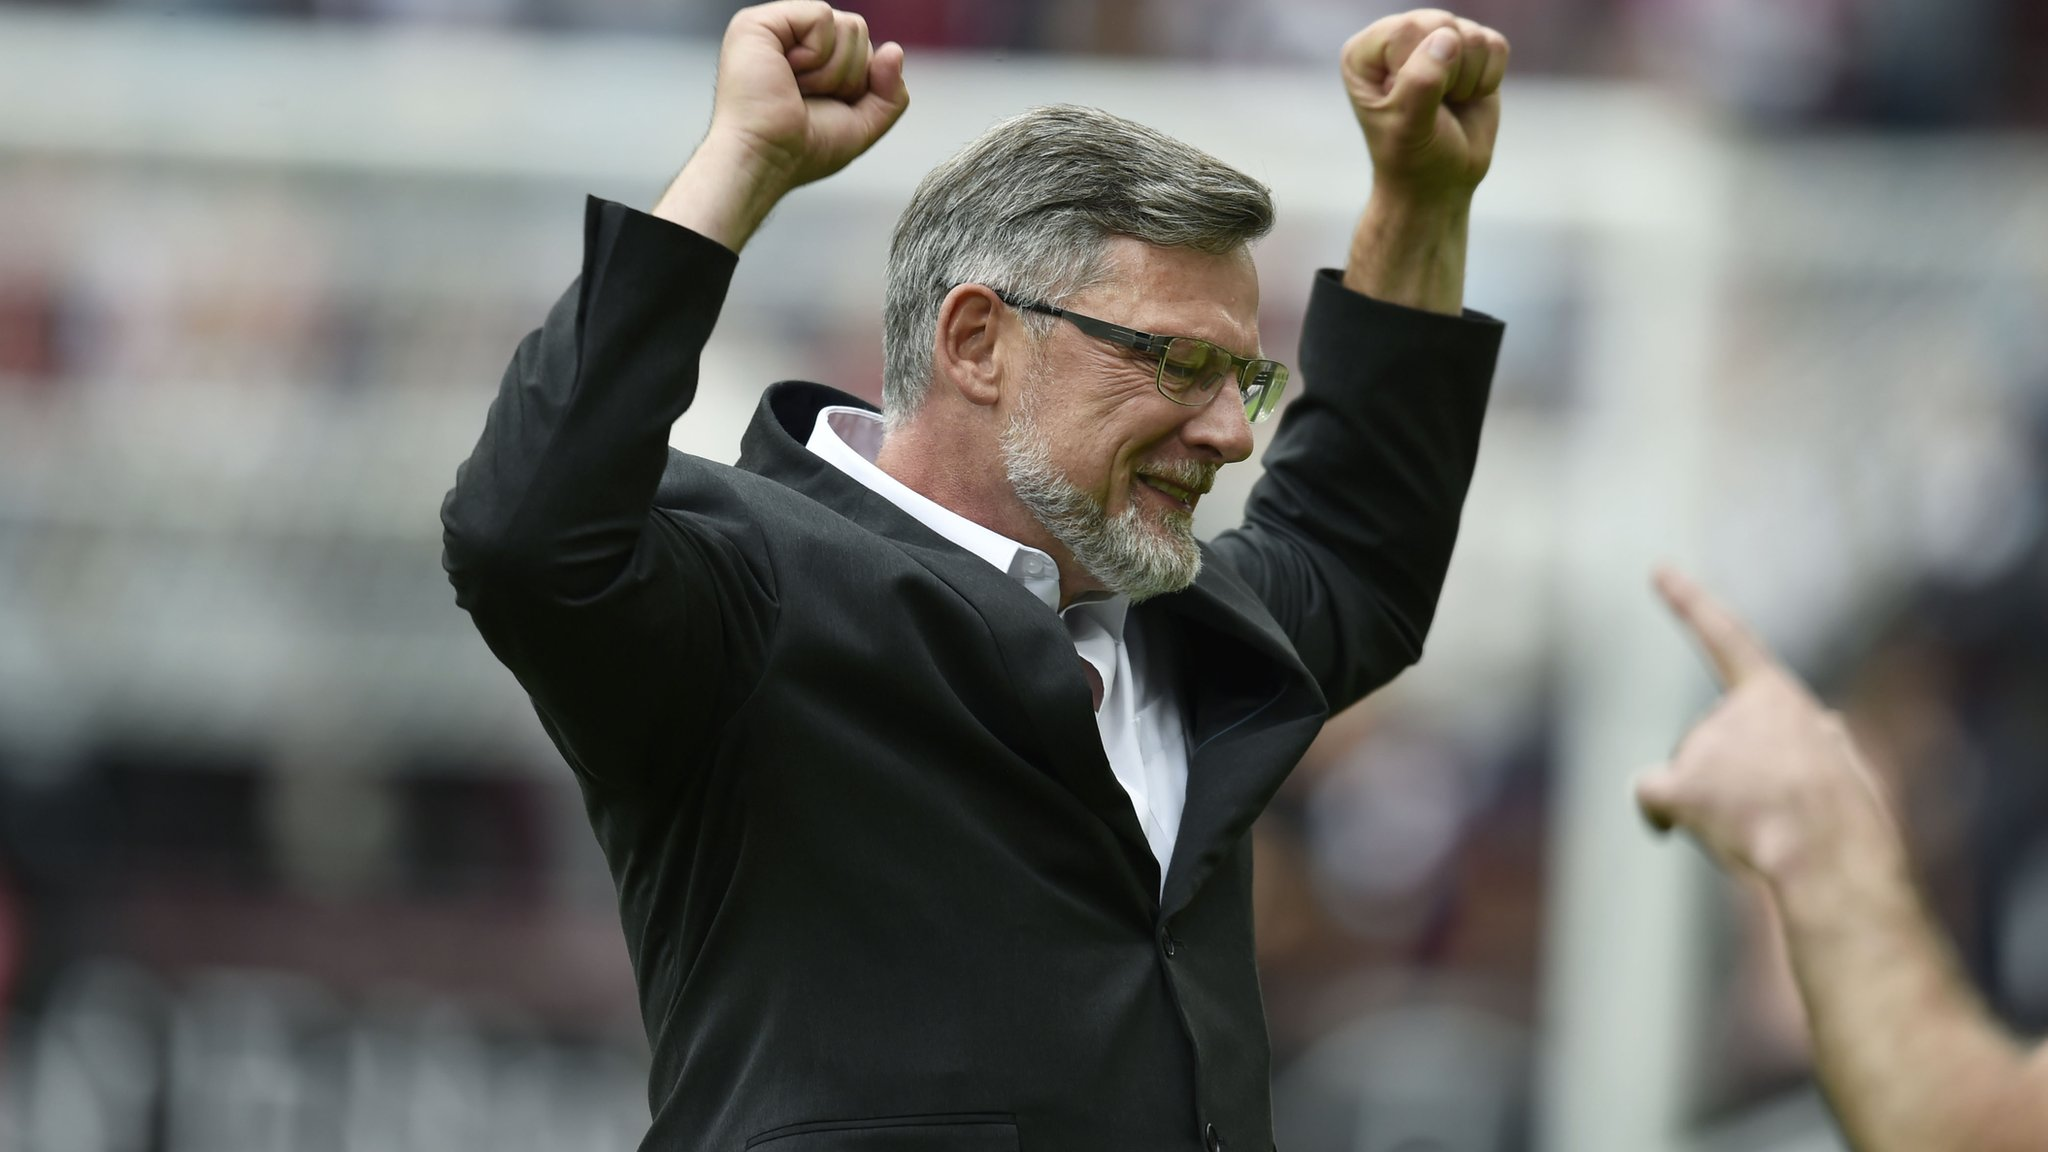 Hearts boss Levein savours win over Celtic but rues Berra injury